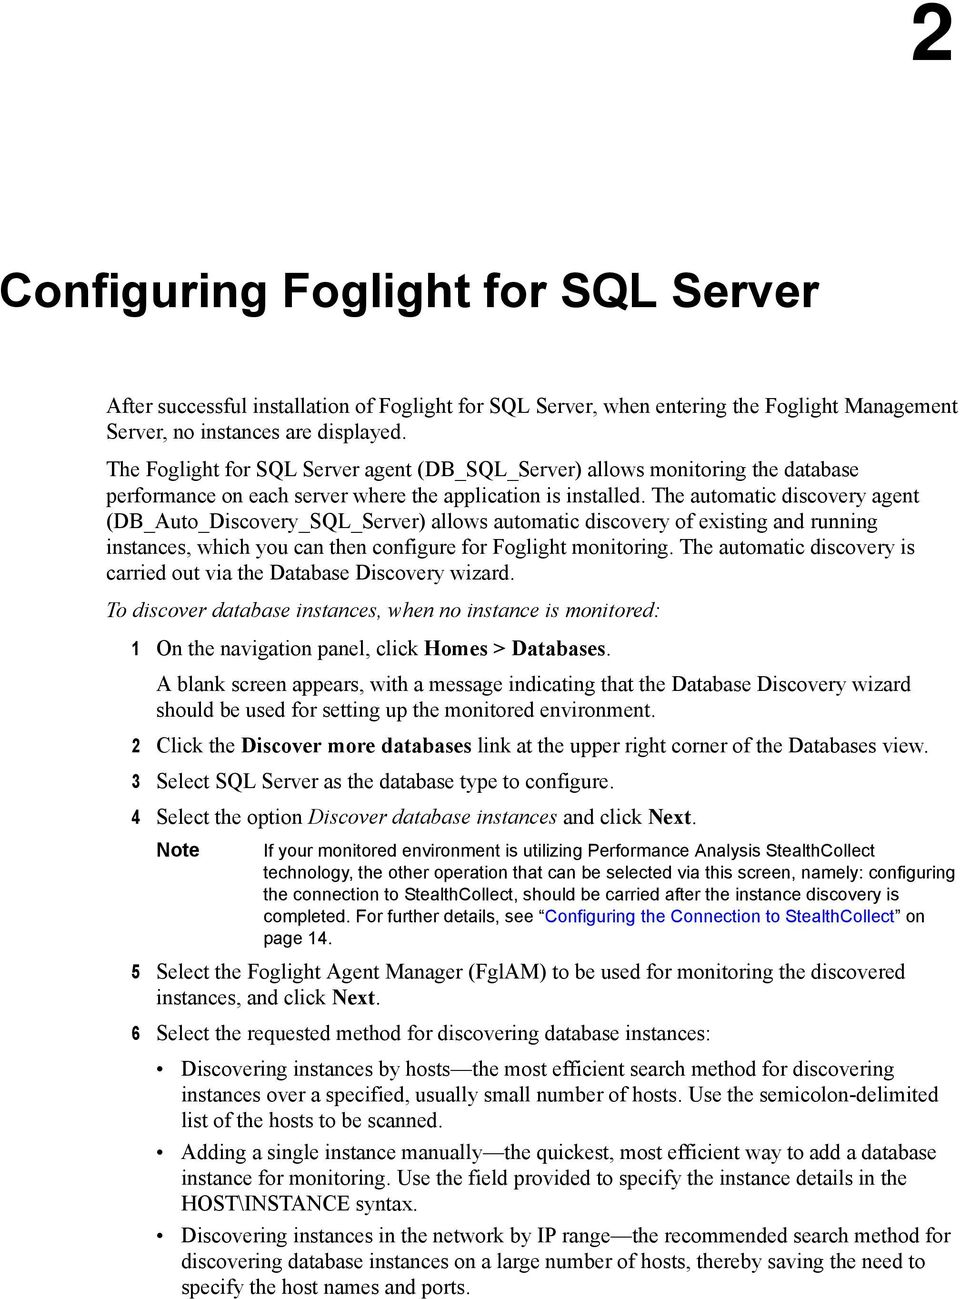 The automatic discovery agent (DB_Auto_Discovery_SQL_Server) allows automatic discovery of existing and running instances, which you can then configure for Foglight monitoring.